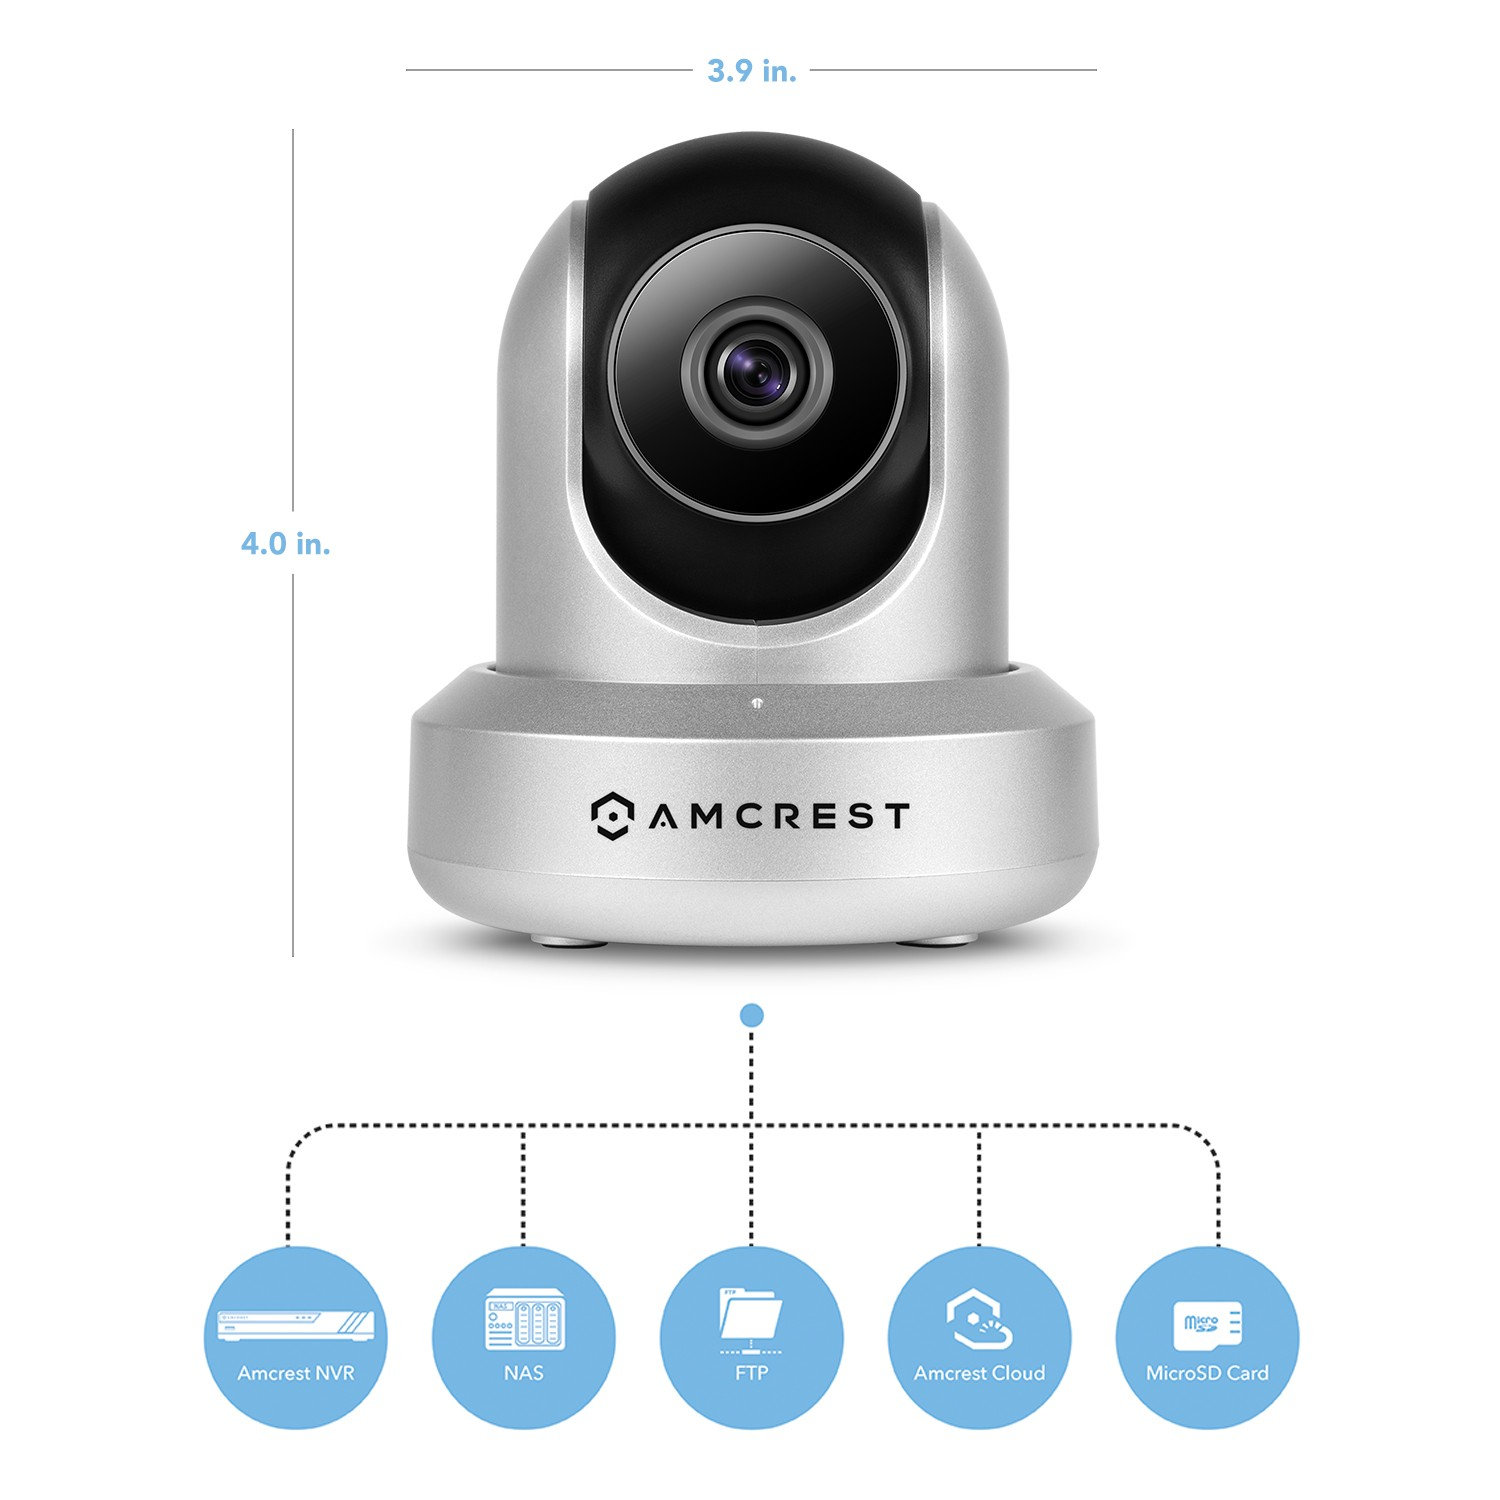 HD 720P WiFi Video Monitoring Security IP Camera (Silver